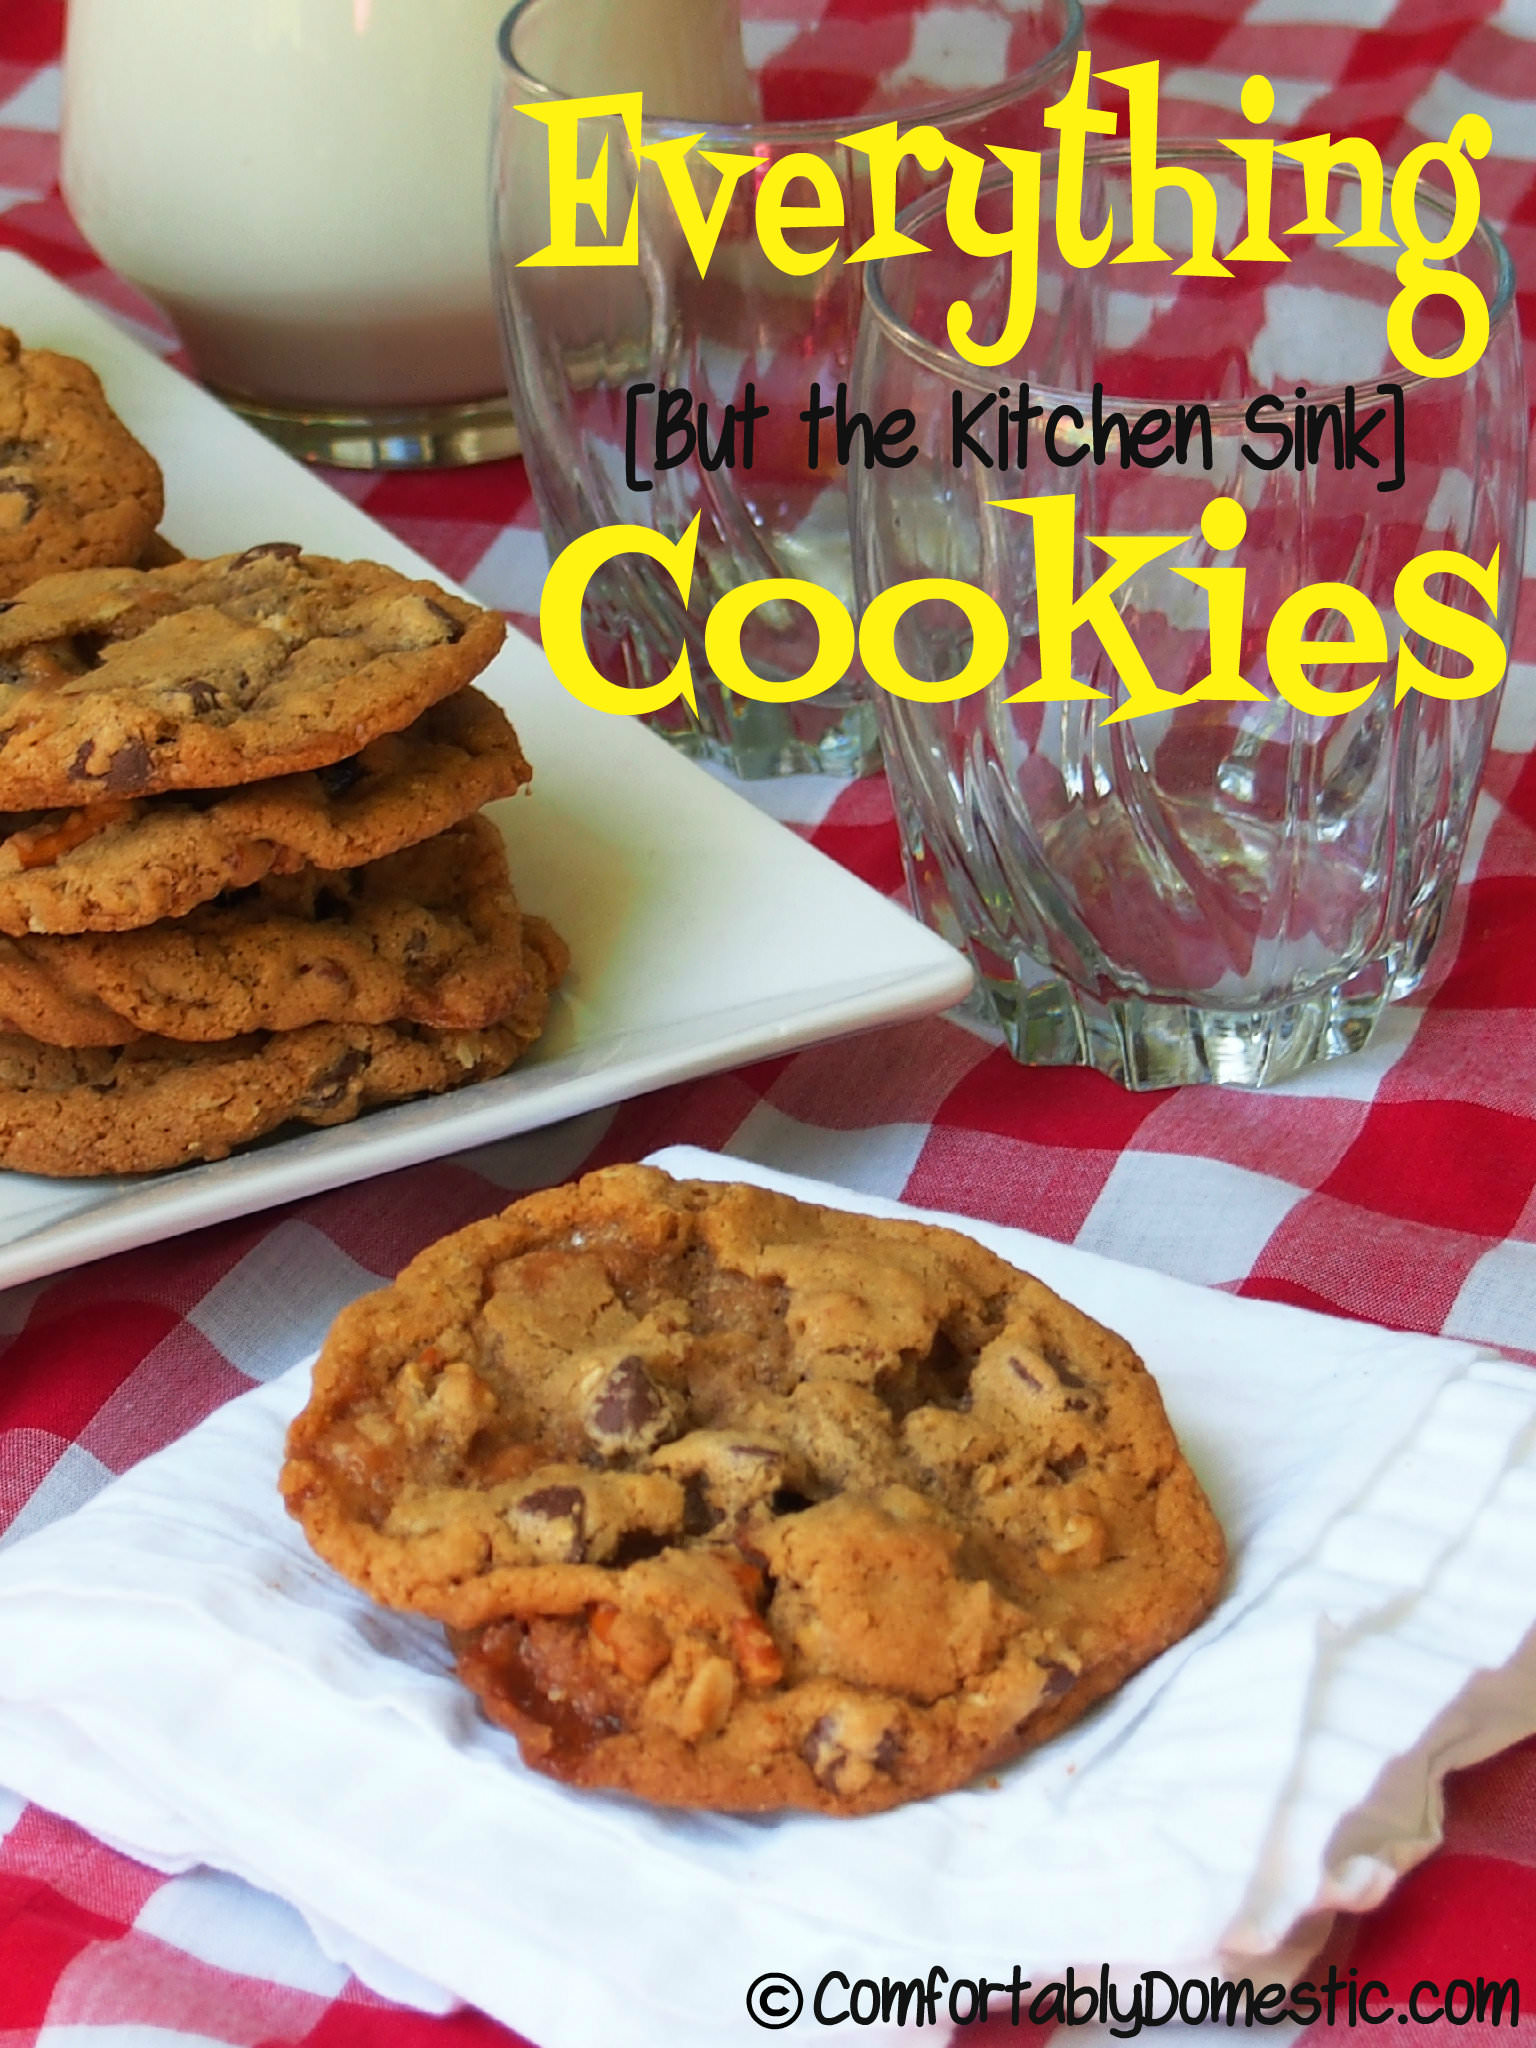 ... but the kitchen sink! Everything cookies contain semi sweet chocolate chips crushed salted pretzels dried cherries chewy & Everything (But the Kitchen Sink) Cookies - Comfortably Domestic